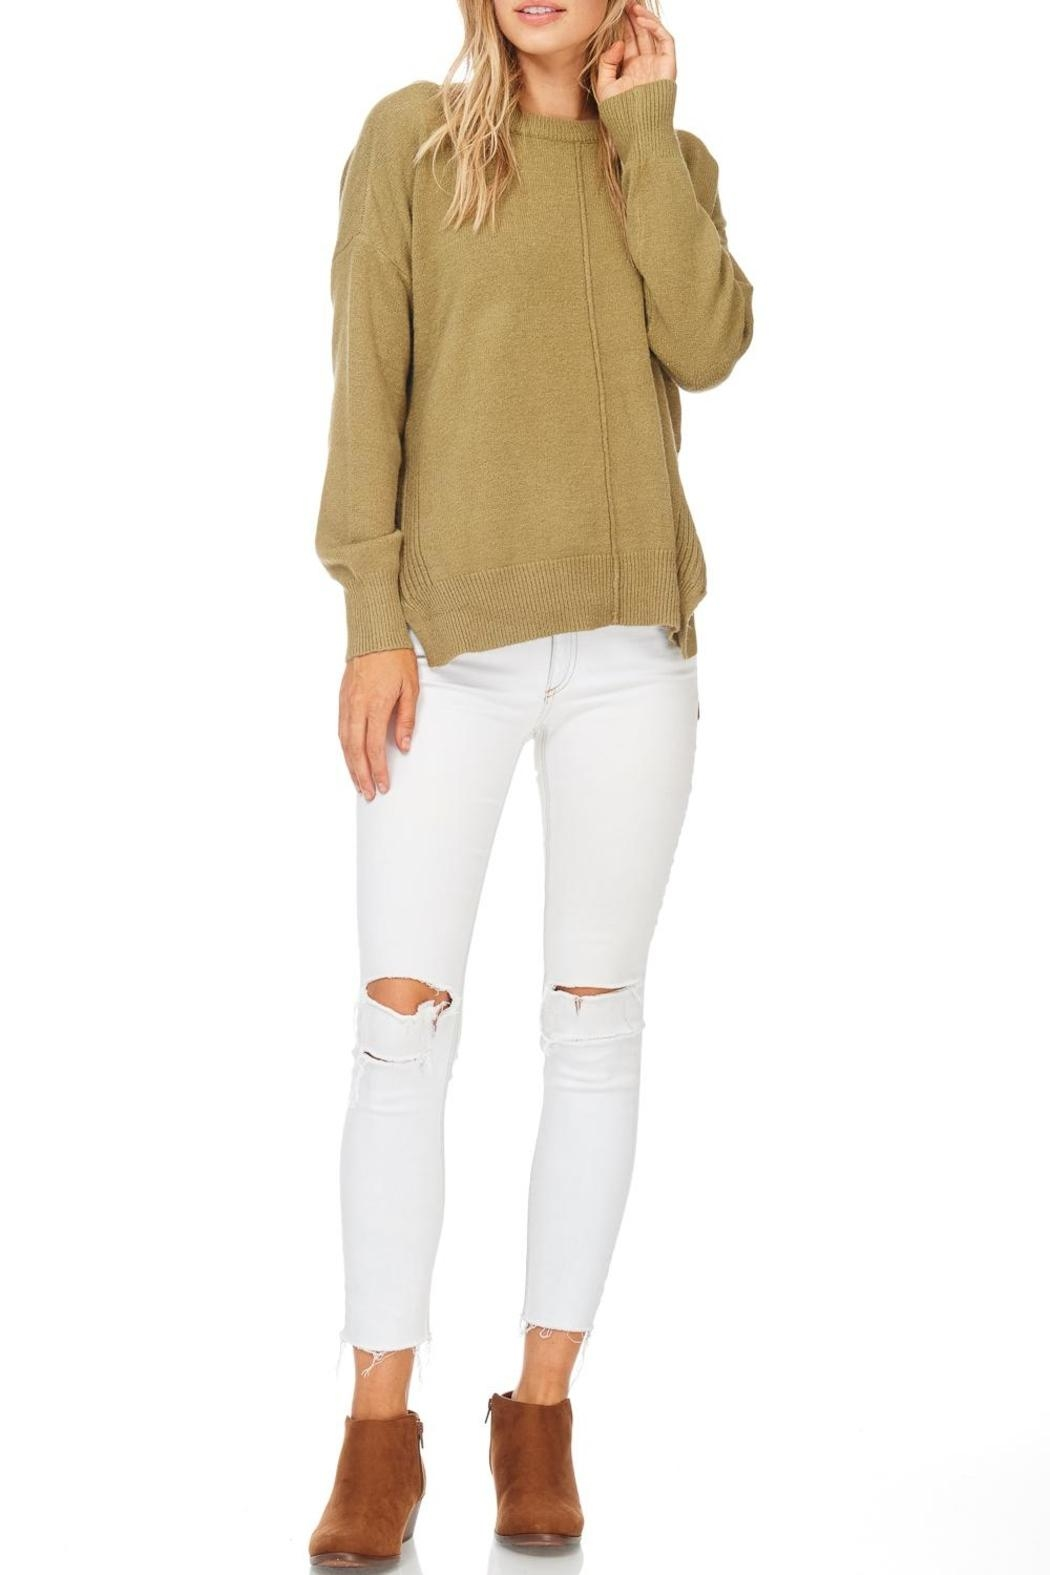 Hem & Thread Olive Crew Neck Sweater - Front Cropped Image